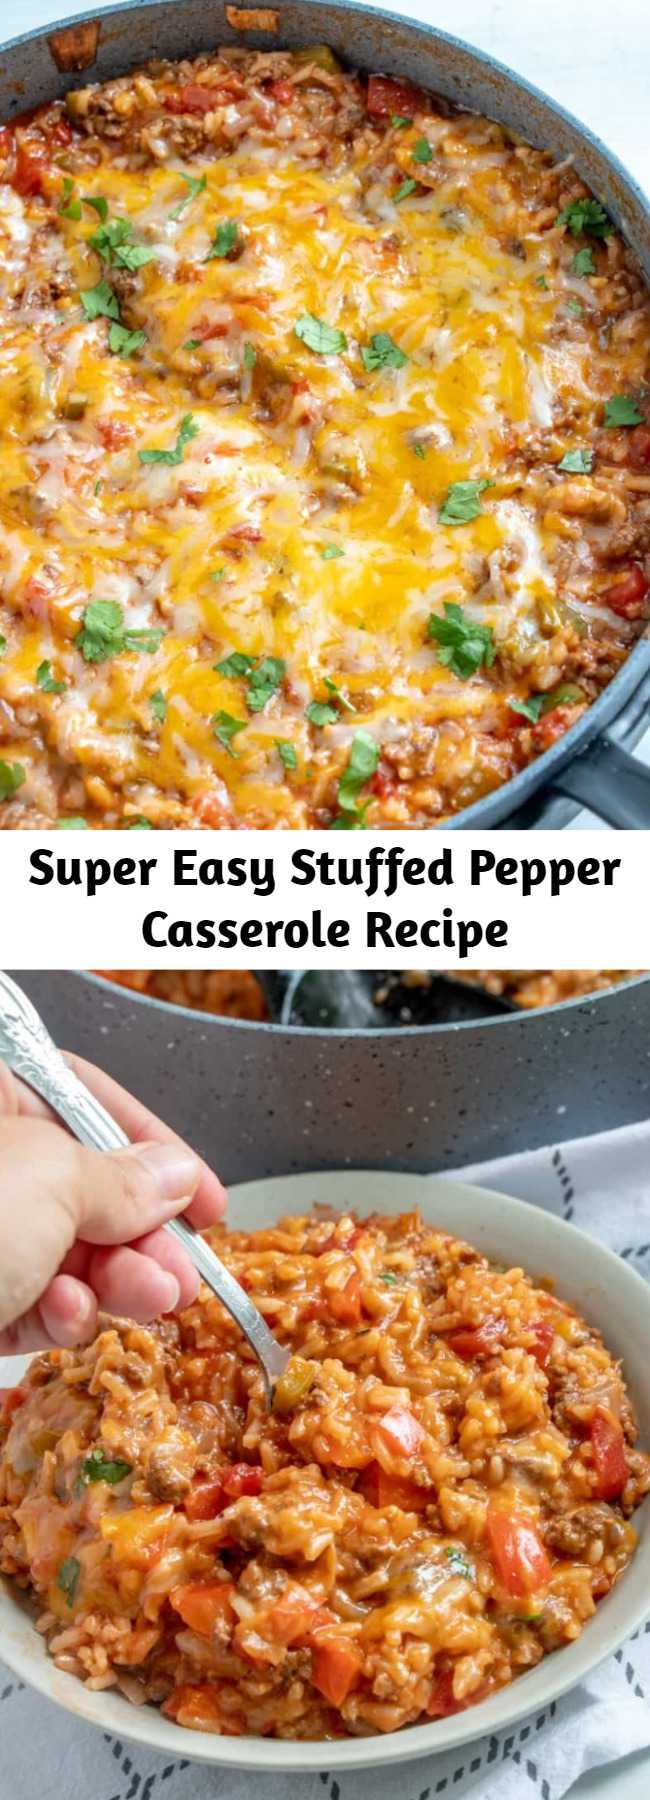 Super Easy Stuffed Pepper Casserole Recipe - This Stuffed Pepper Casserole has all the delicious flavors of regular stuffed peppers but turned inside out and made in one pan, keeping the mess to a minimum! #dinnertime #beef #cheesy #recipe #easyrecipe #tasty